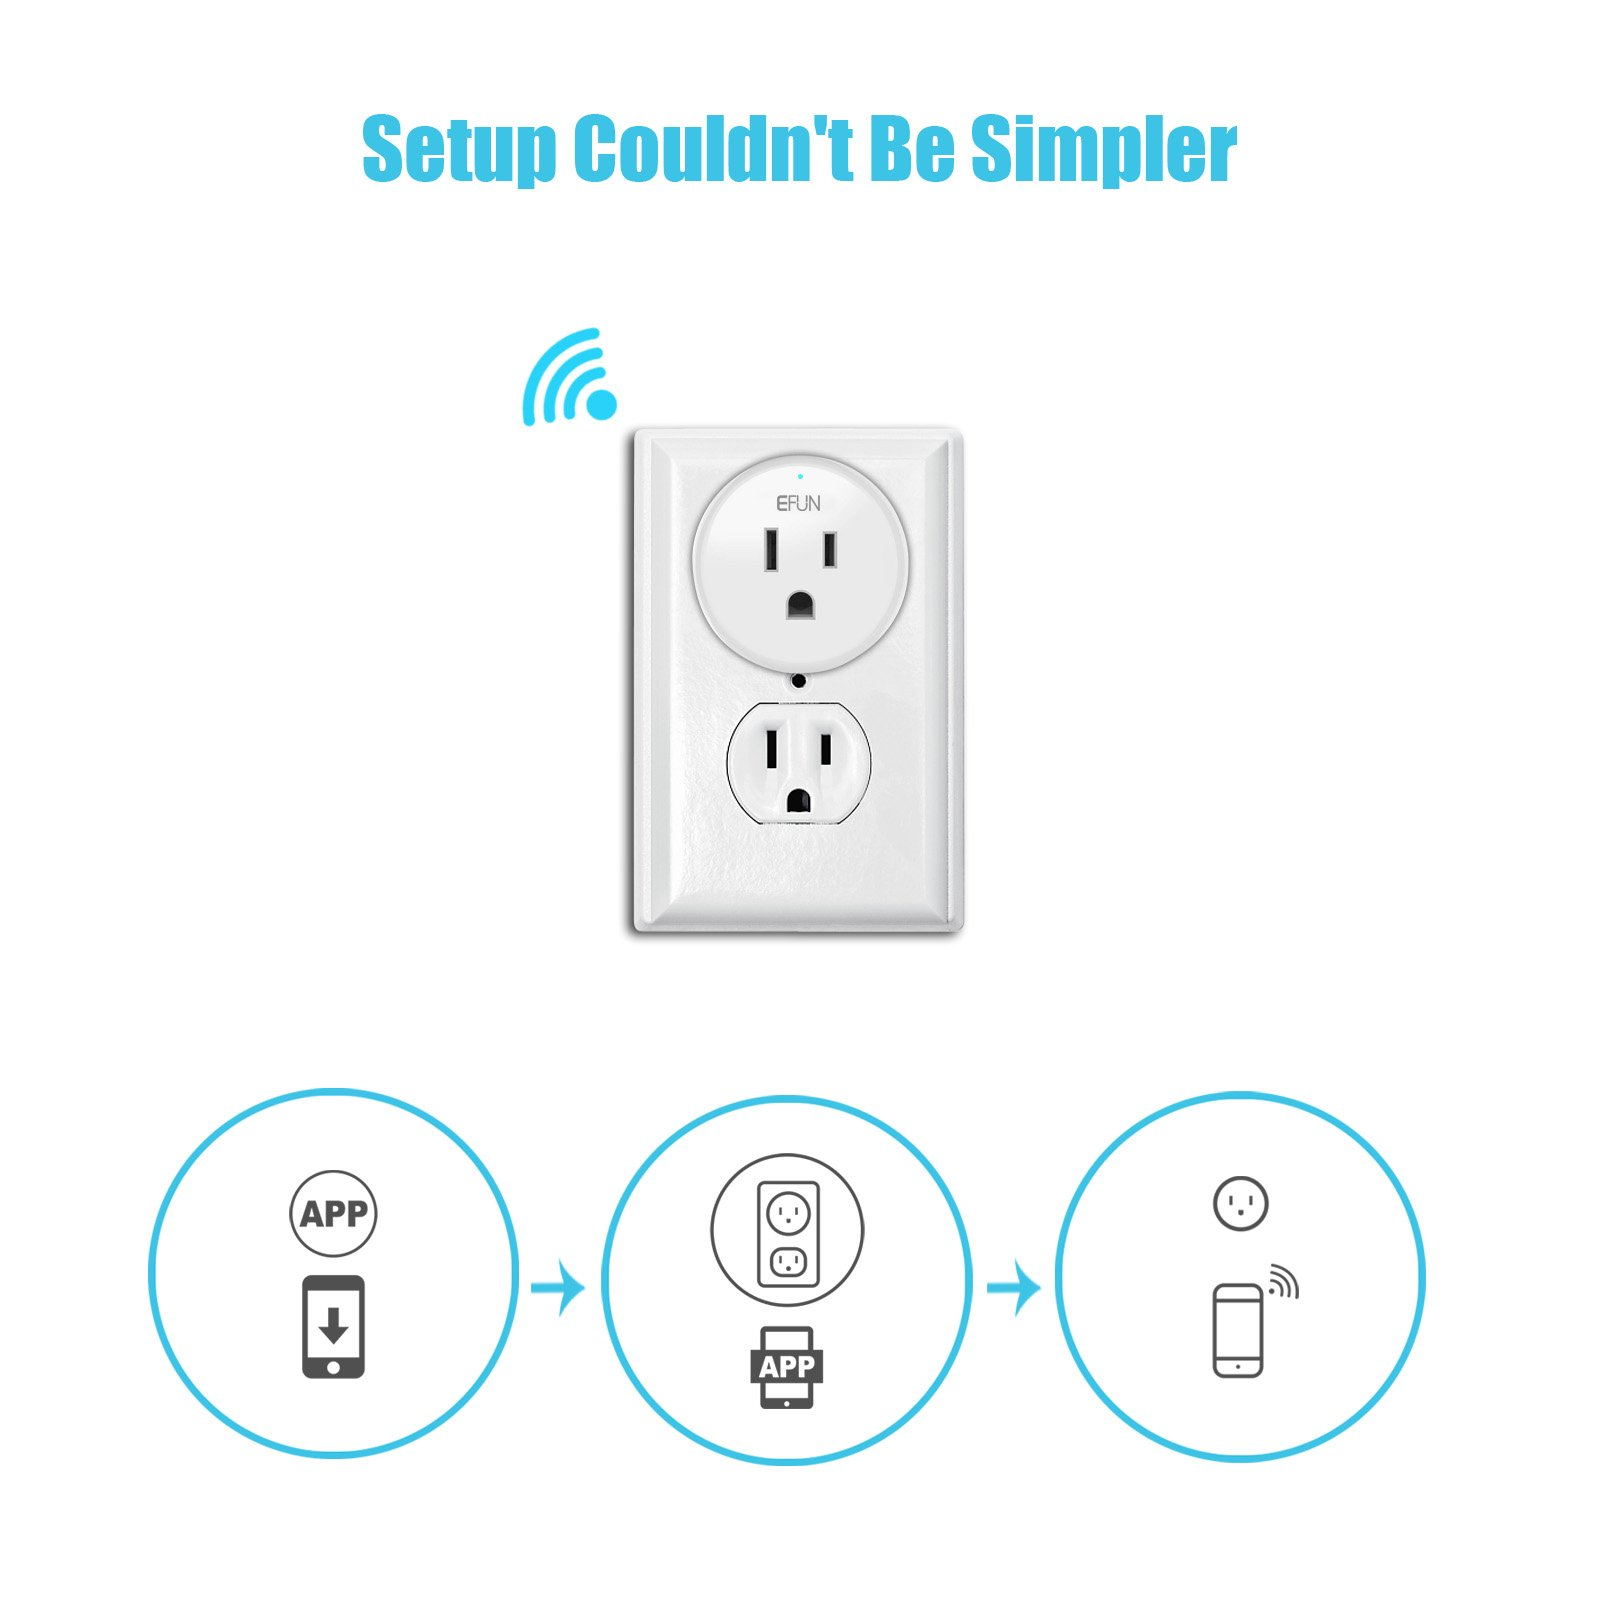 EFUN SH330W 2 PACK Wi-Fi Smart Plug Outlet,No Hub Required,Overload Protection,Fire Retardant Material,Space Saving,Works with Alexa and Google Assistant by EFUN (Image #2)